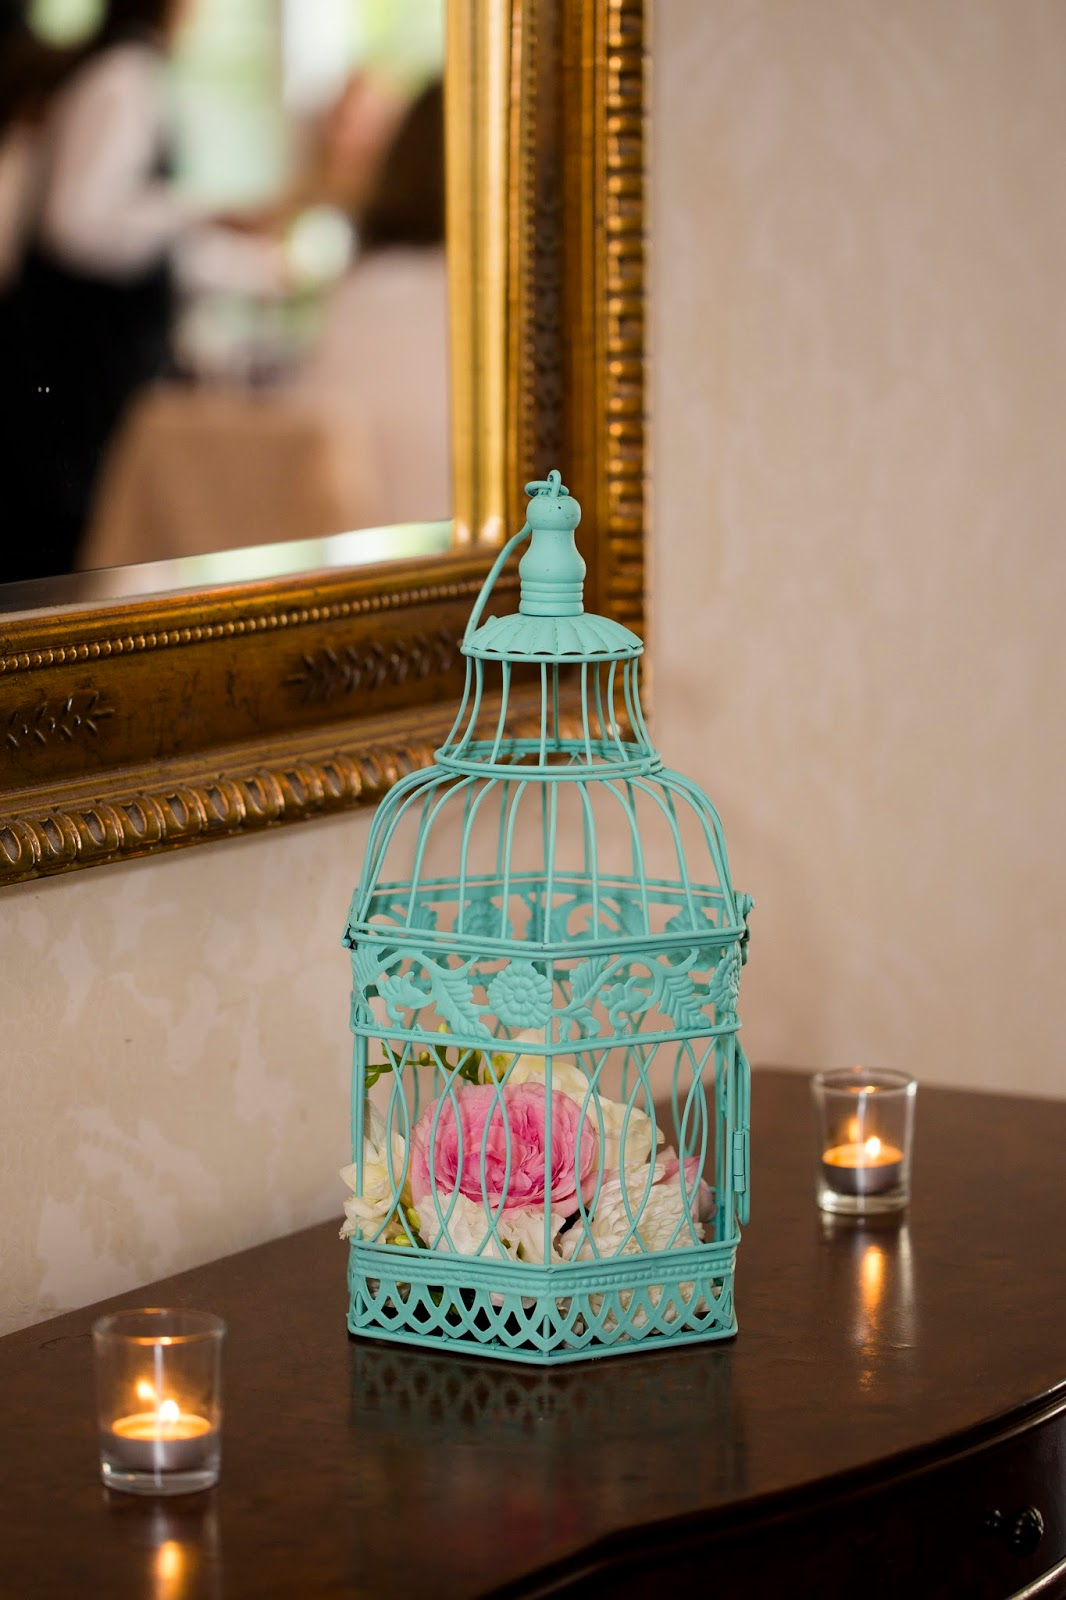 Wedding Wednesday- Painted birdcage wedding decor ideas | Meet the B's